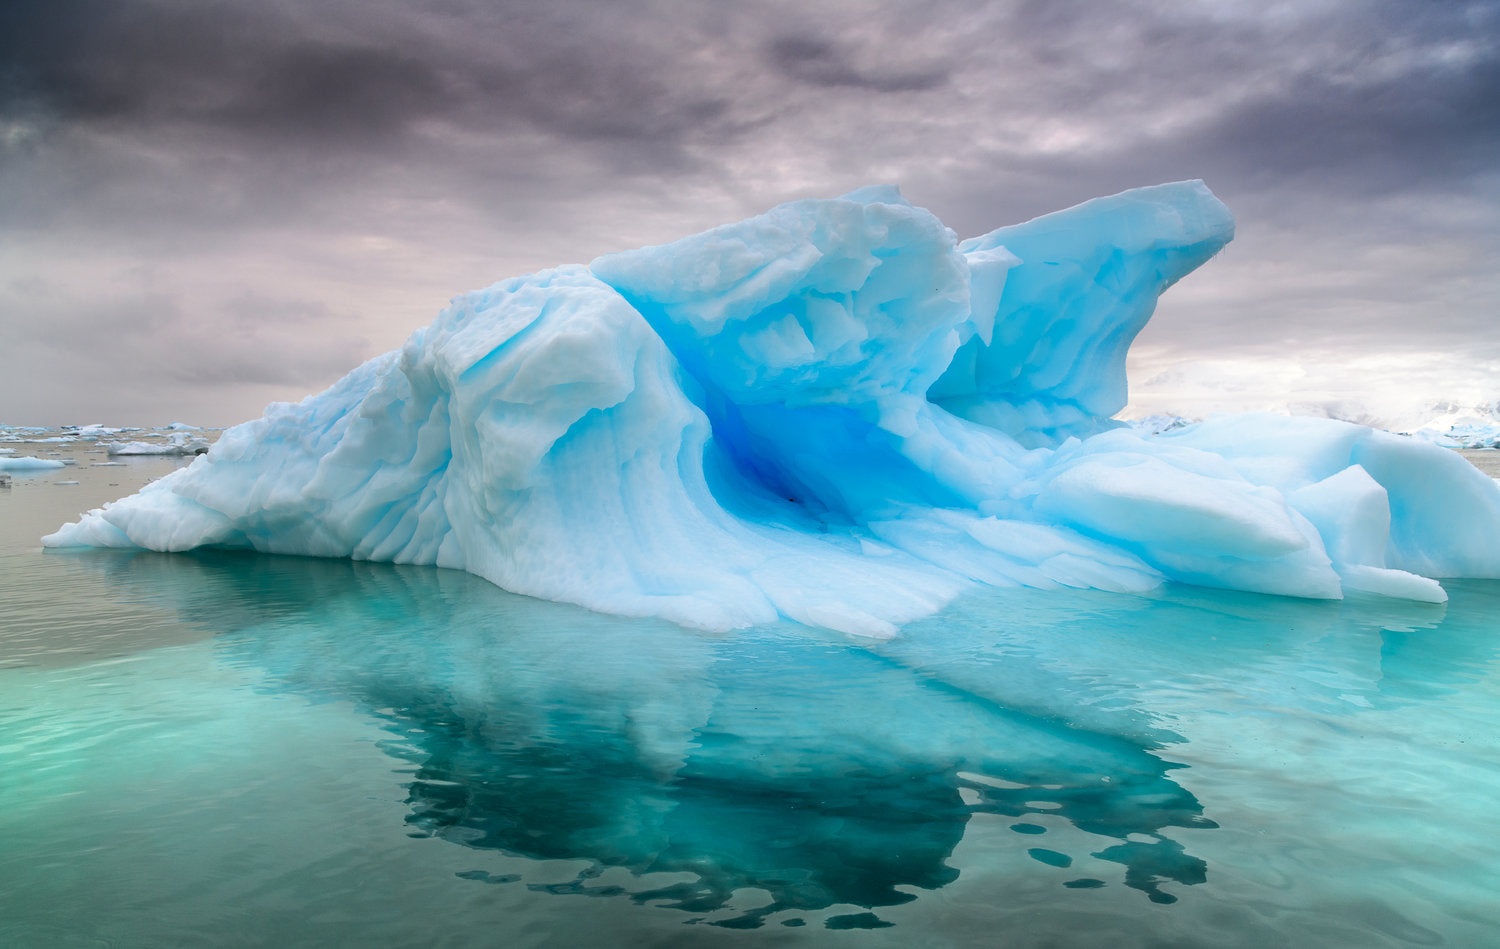 Icebergs in antarctica photo by muench workshops